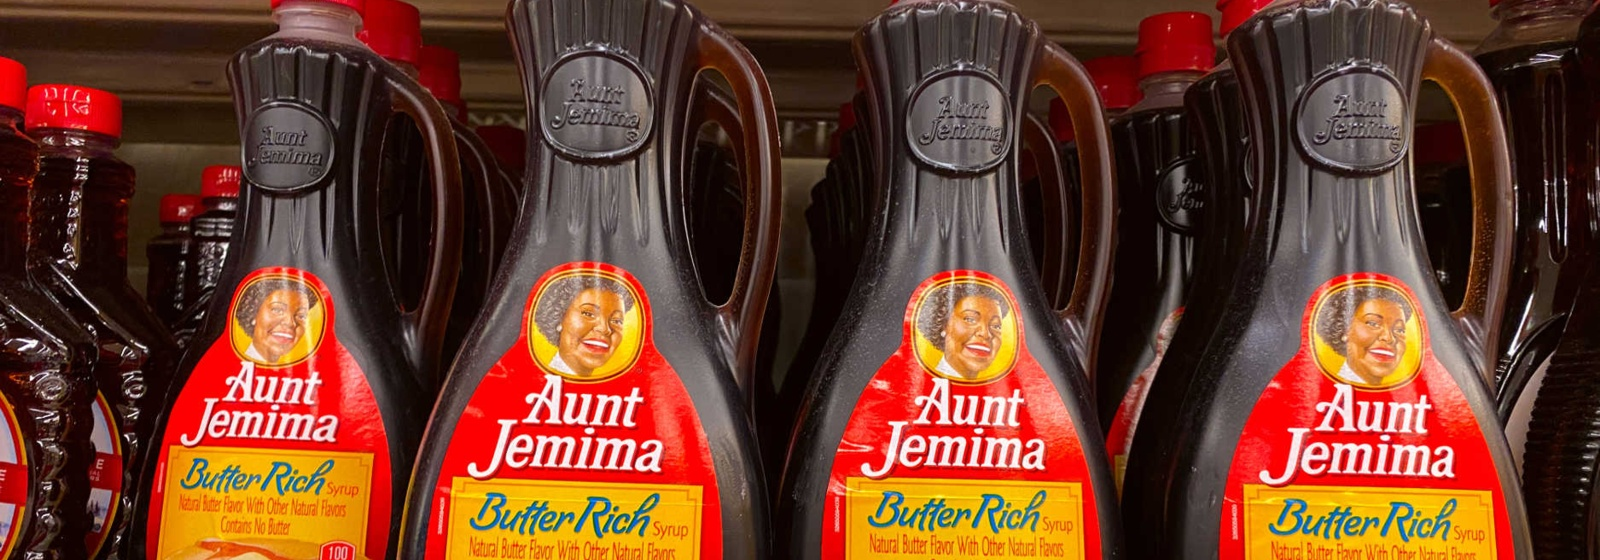 Family of Original 'Aunt Jemima': Don't Erase History